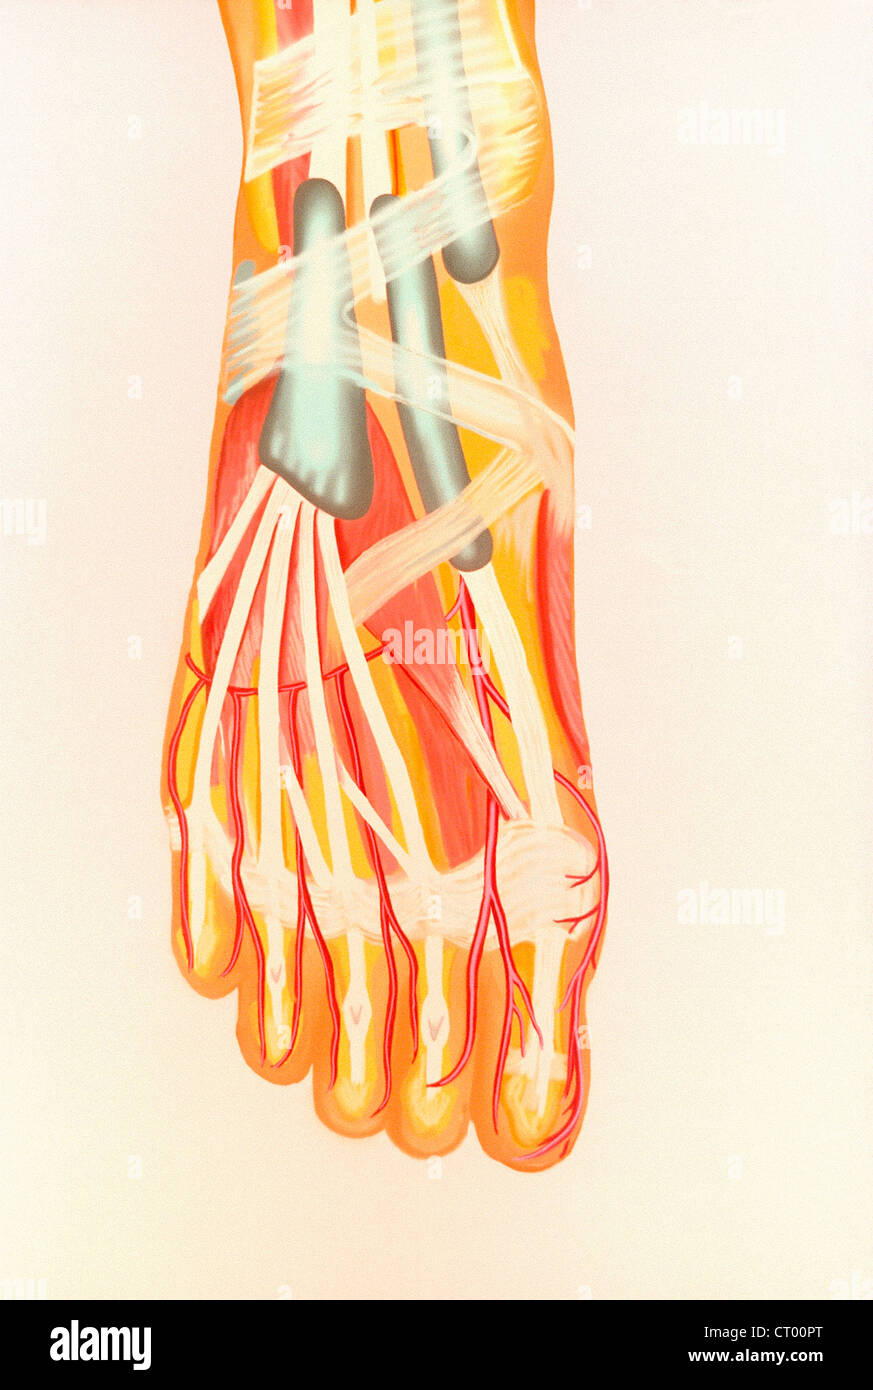 Foot Anatomy Tendons Ligaments Stock Photos Foot Anatomy Tendons